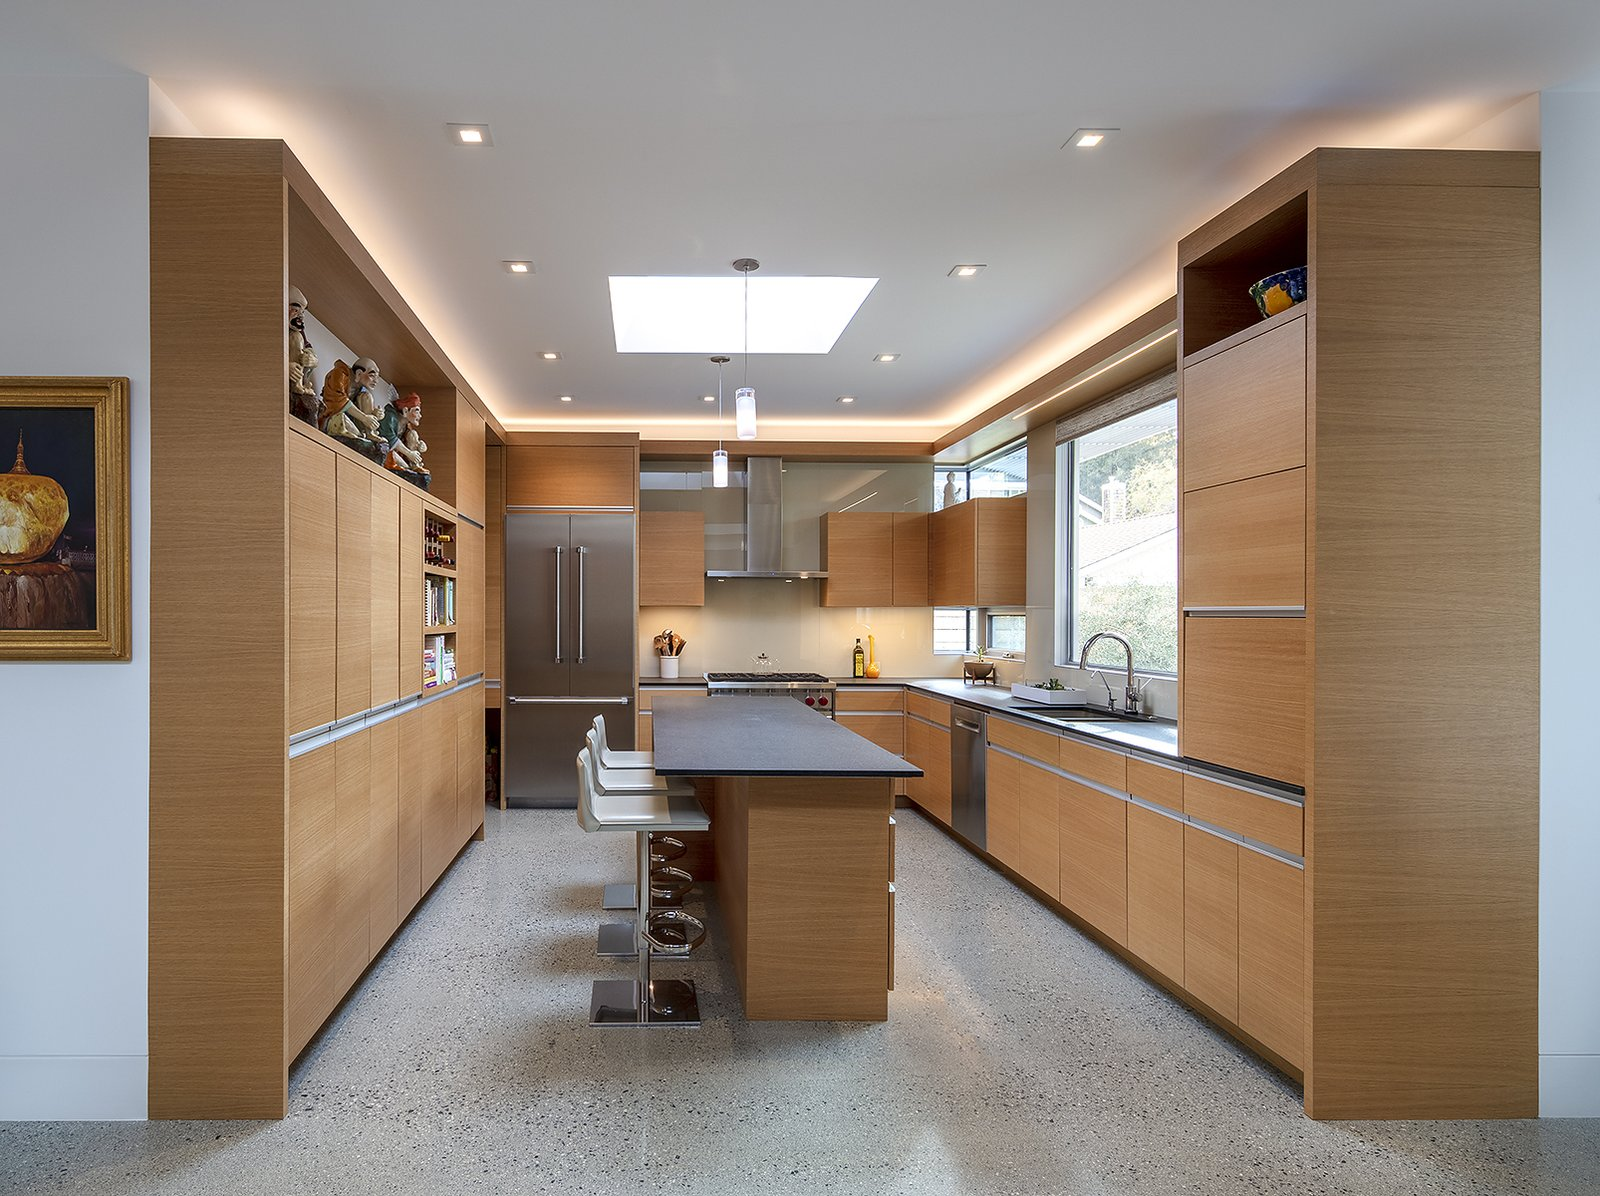 Kitchen, Wood Cabinet, Concrete Floor, Dishwasher, Pendant Lighting, Undermount Sink, Range Hood, Glass Tile Backsplashe, Recessed Lighting, Range, Microwave, Granite Counter, and Refrigerator Rift sawn white oak cabinets in the kitchen.  Oak Street by Rossington Architecture